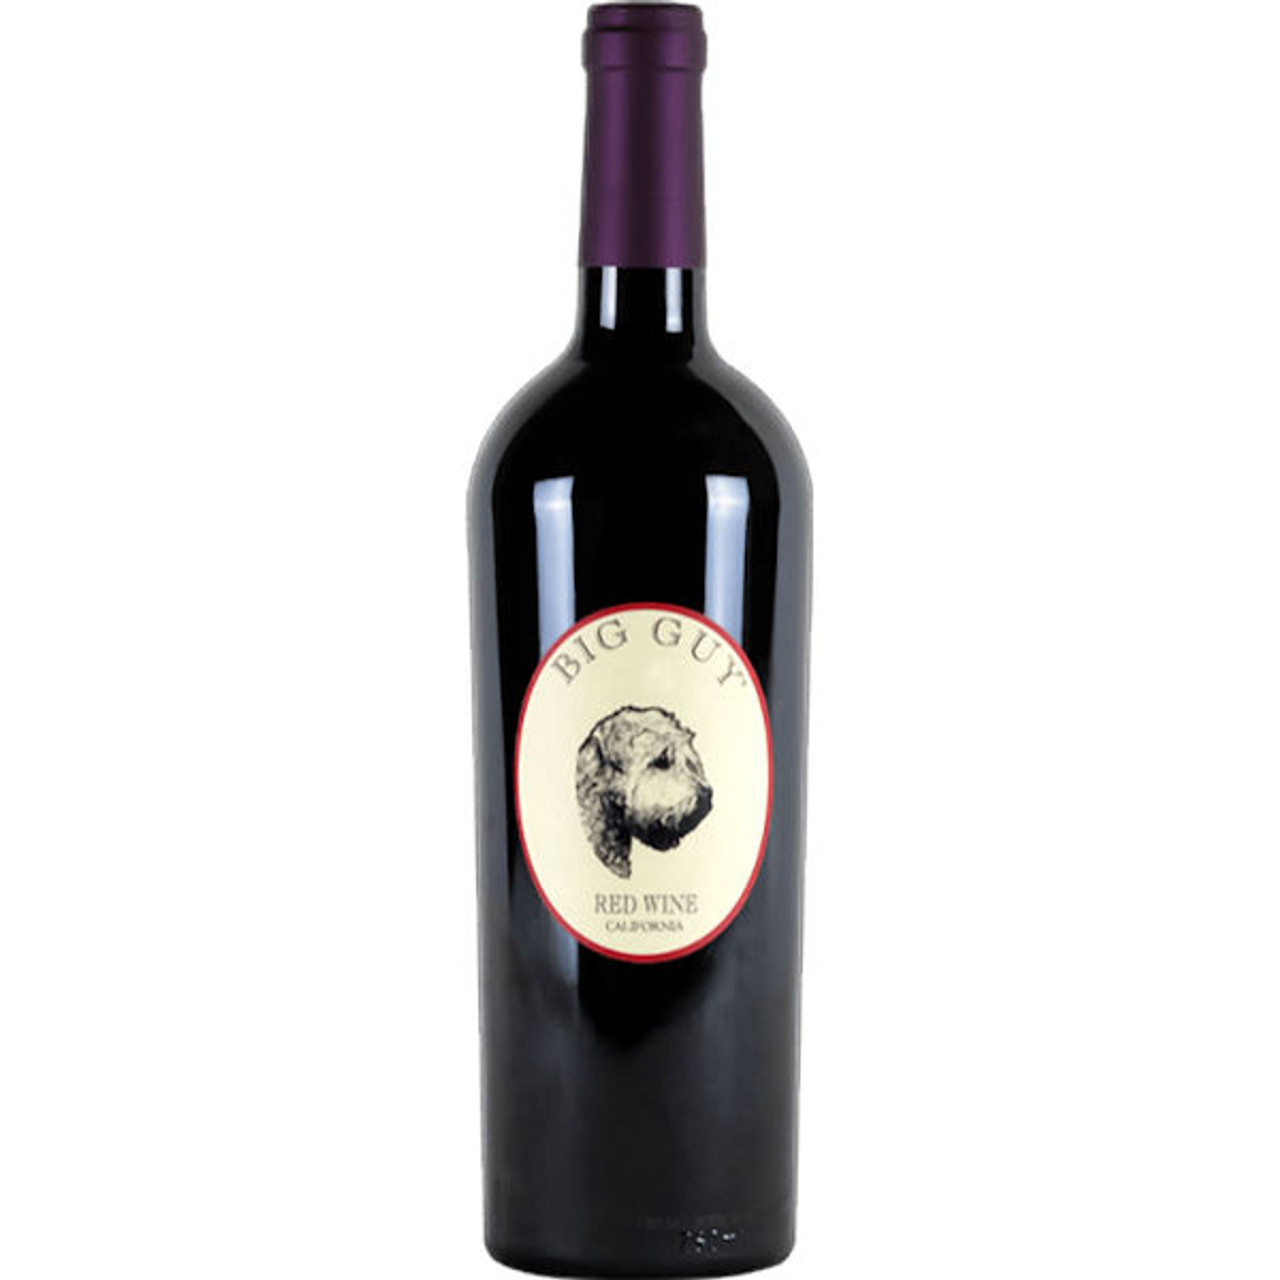 Big Guy California Red Blend 2017